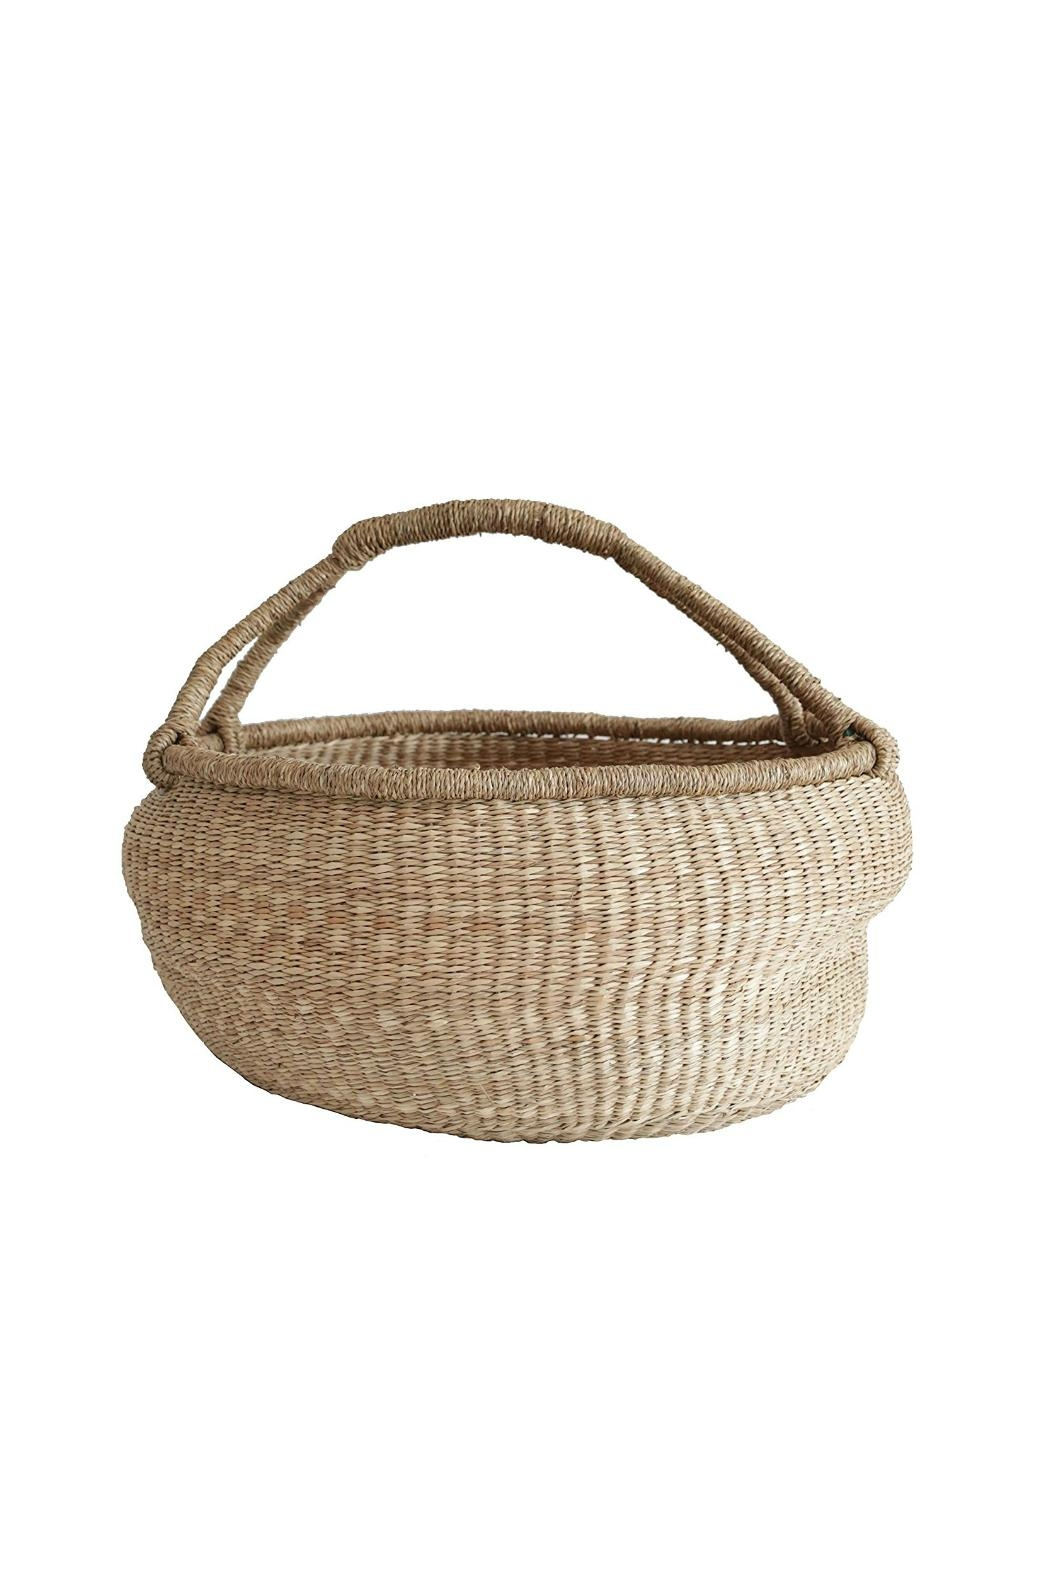 Creative Co-Op Large Round Seagrass Basket - Main Image